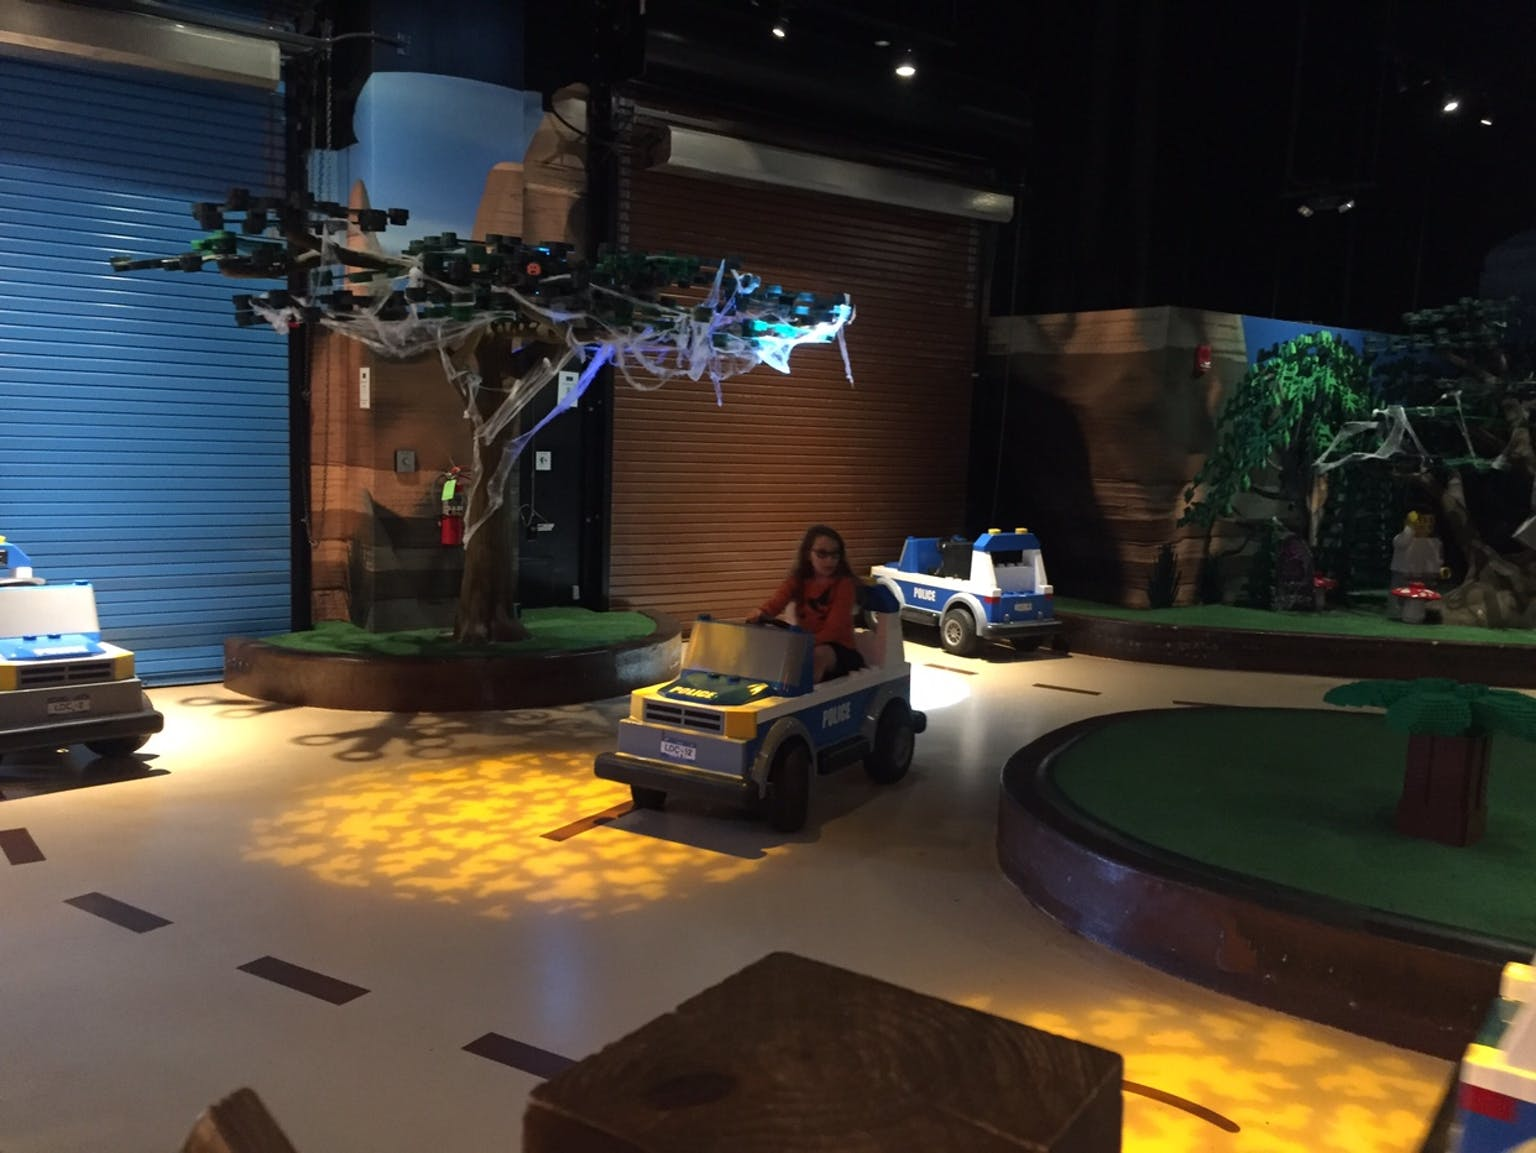 LEGOLAND Discovery Center Dallas/Ft Worth in Grapevine, TX